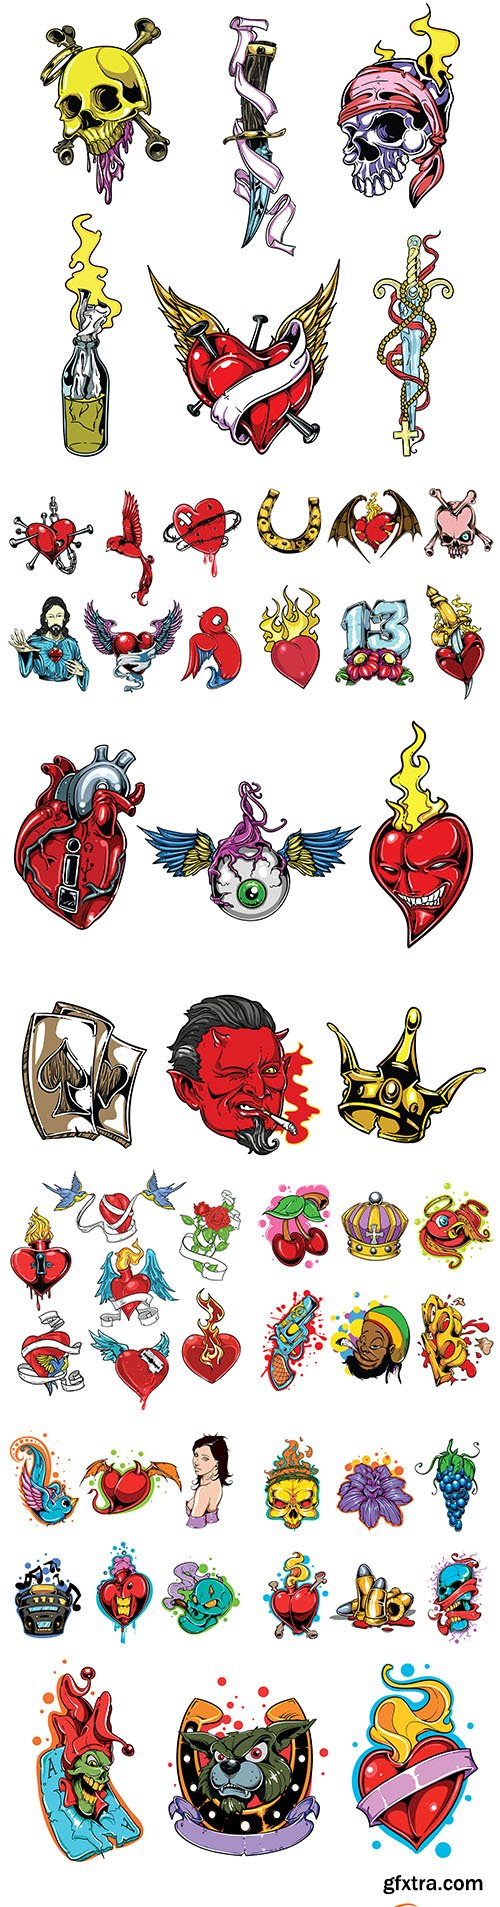 Colorful decorative elements of tattoos and emblems